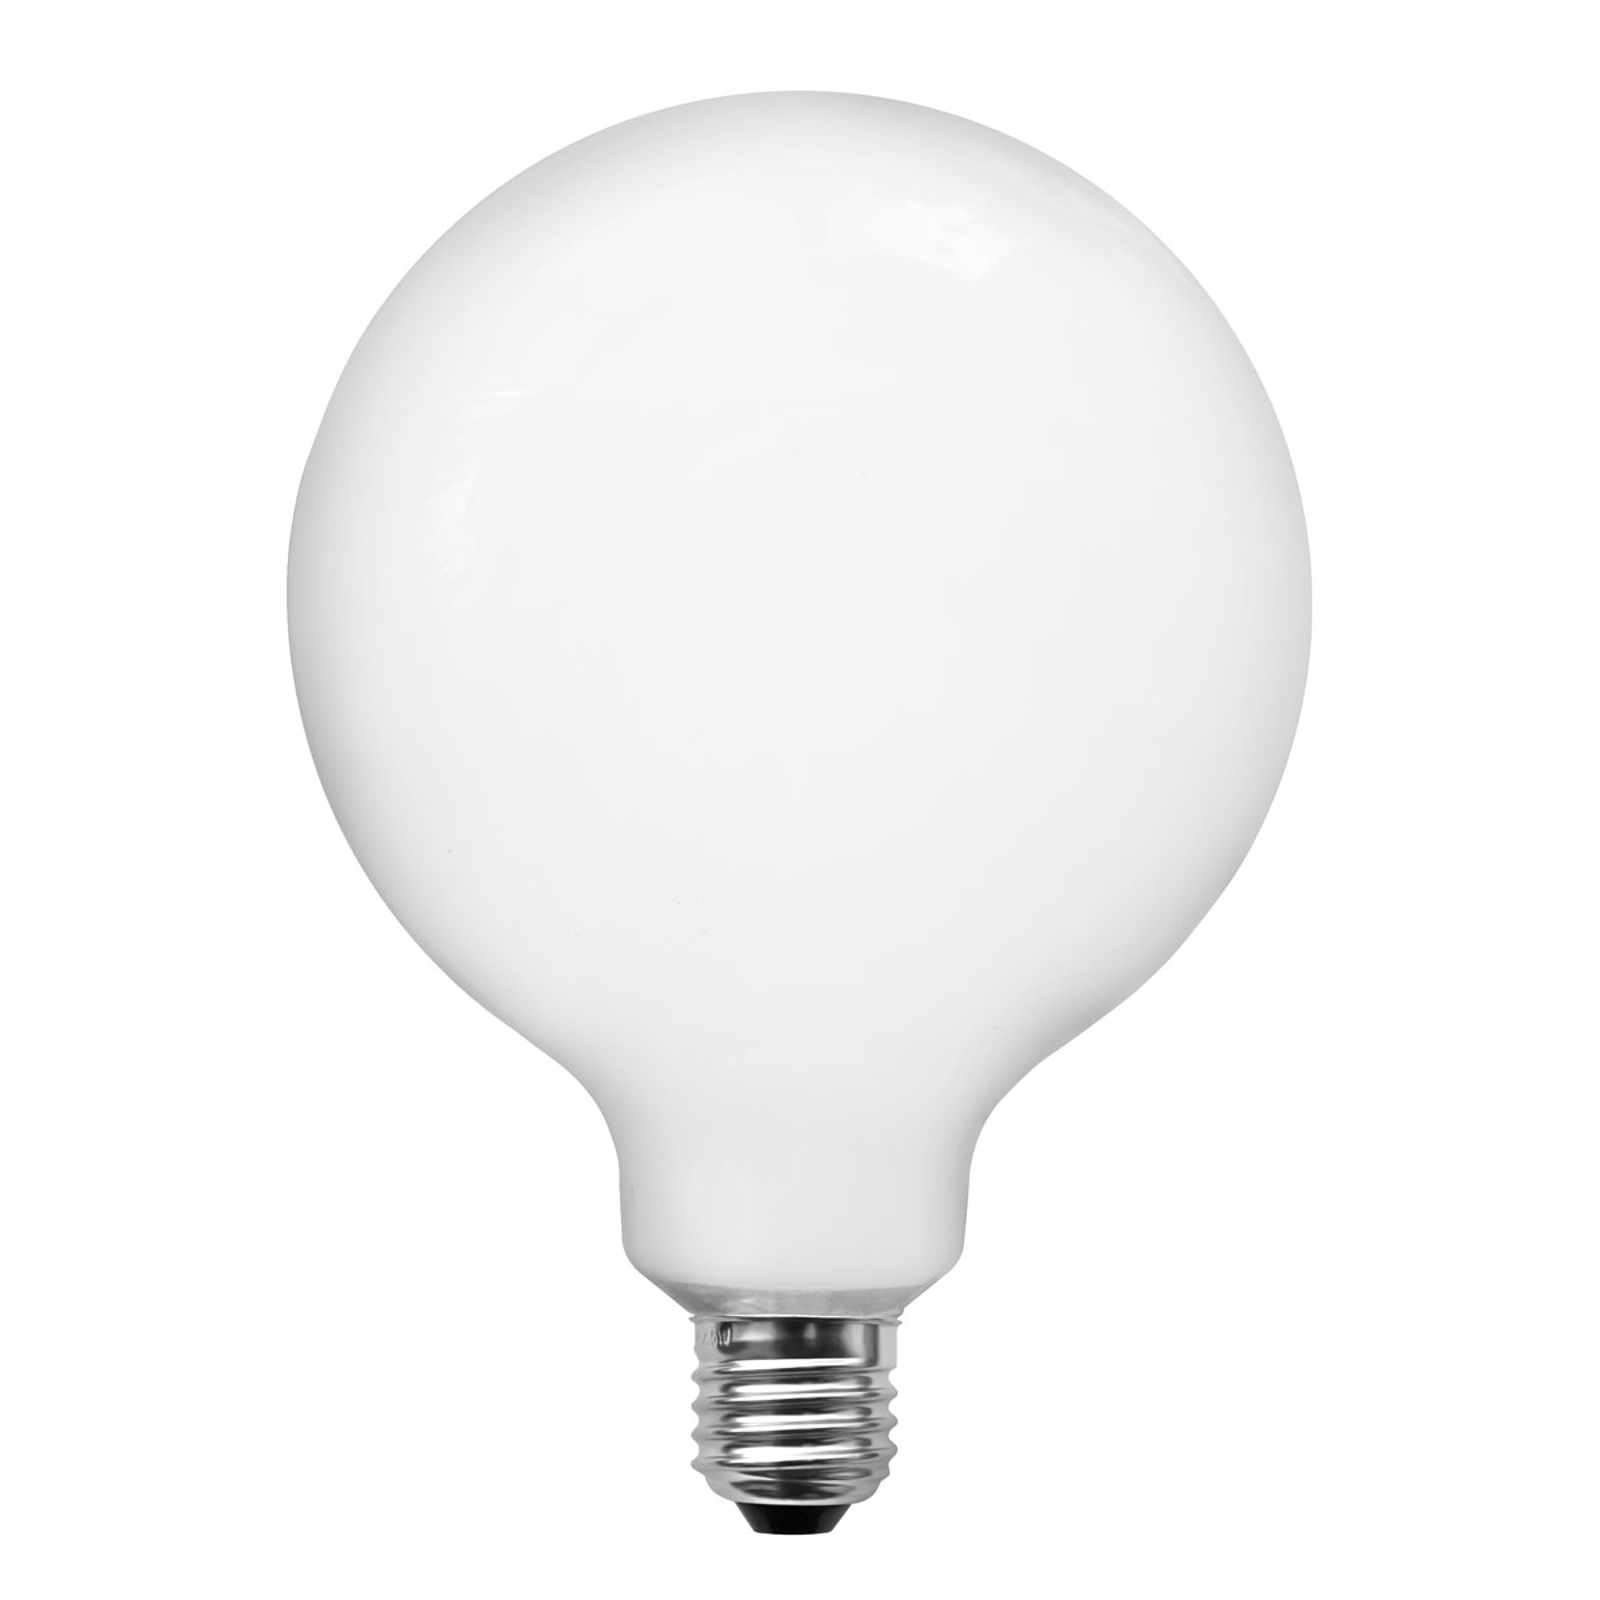 Lampe LED globe E27 4W G95 opale à int variable